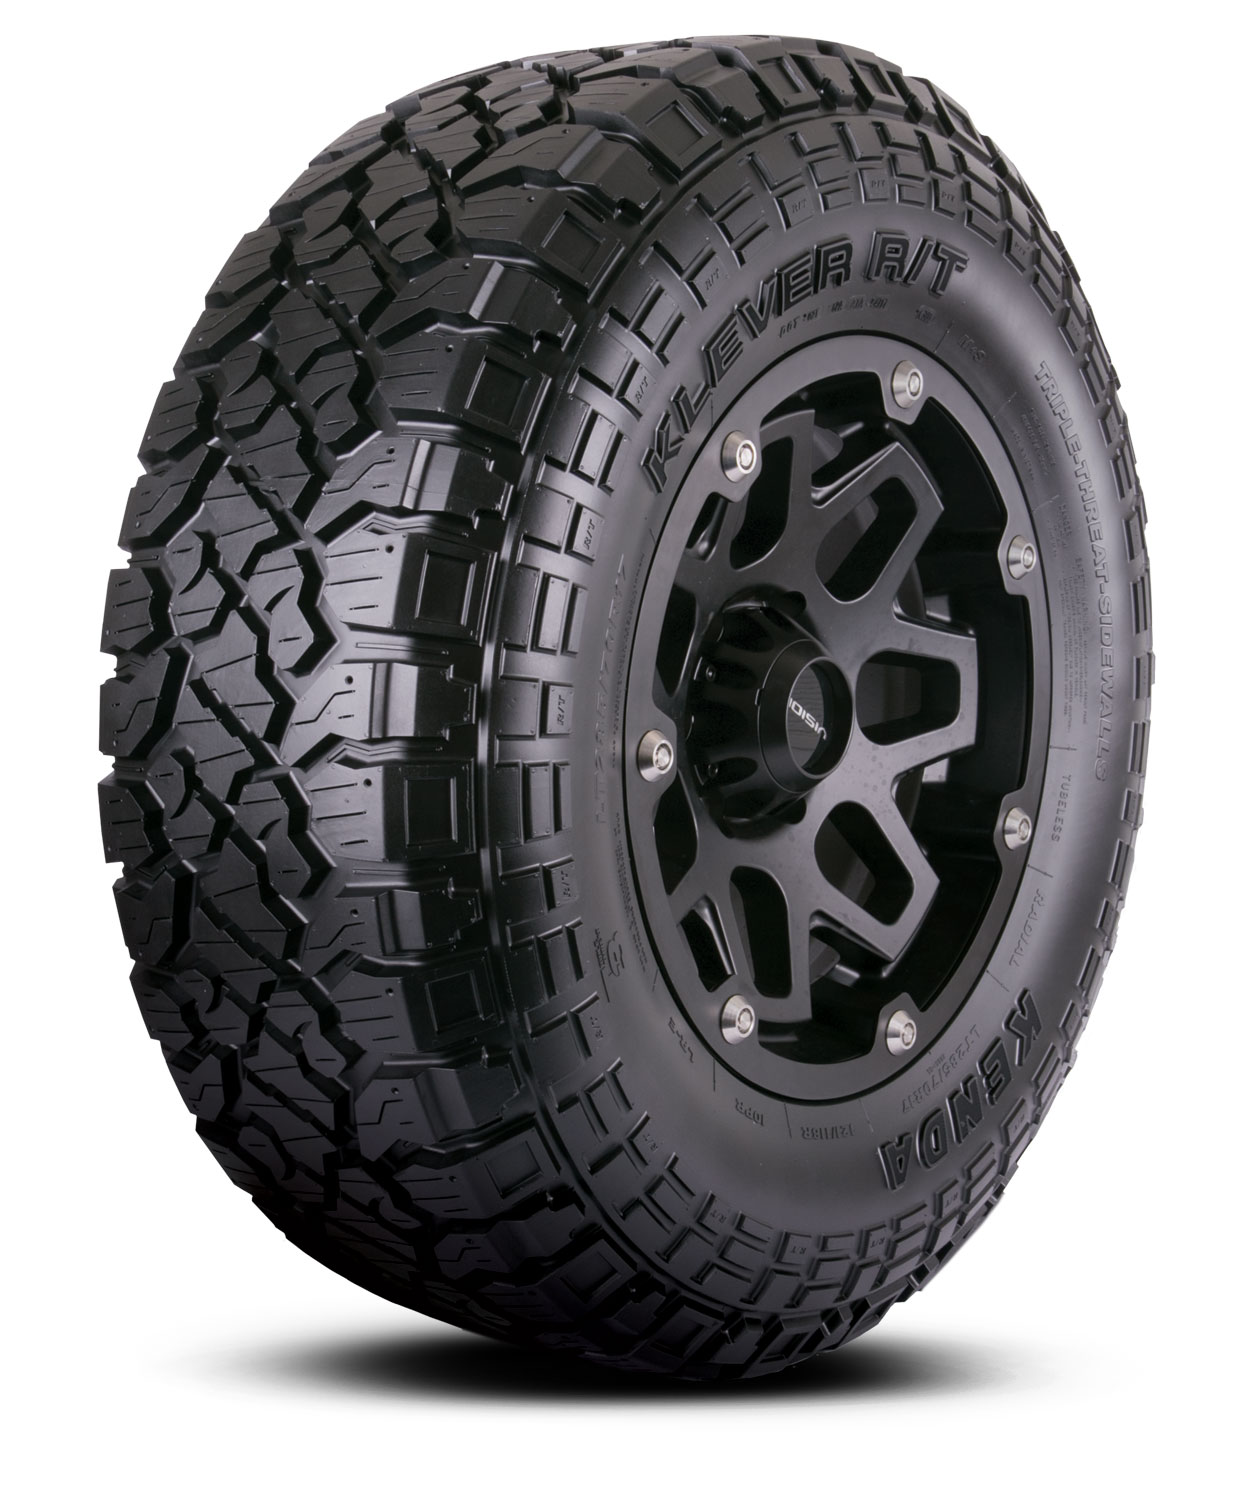 Automotive Tires, Passenger Car Tires, Light Truck Tires